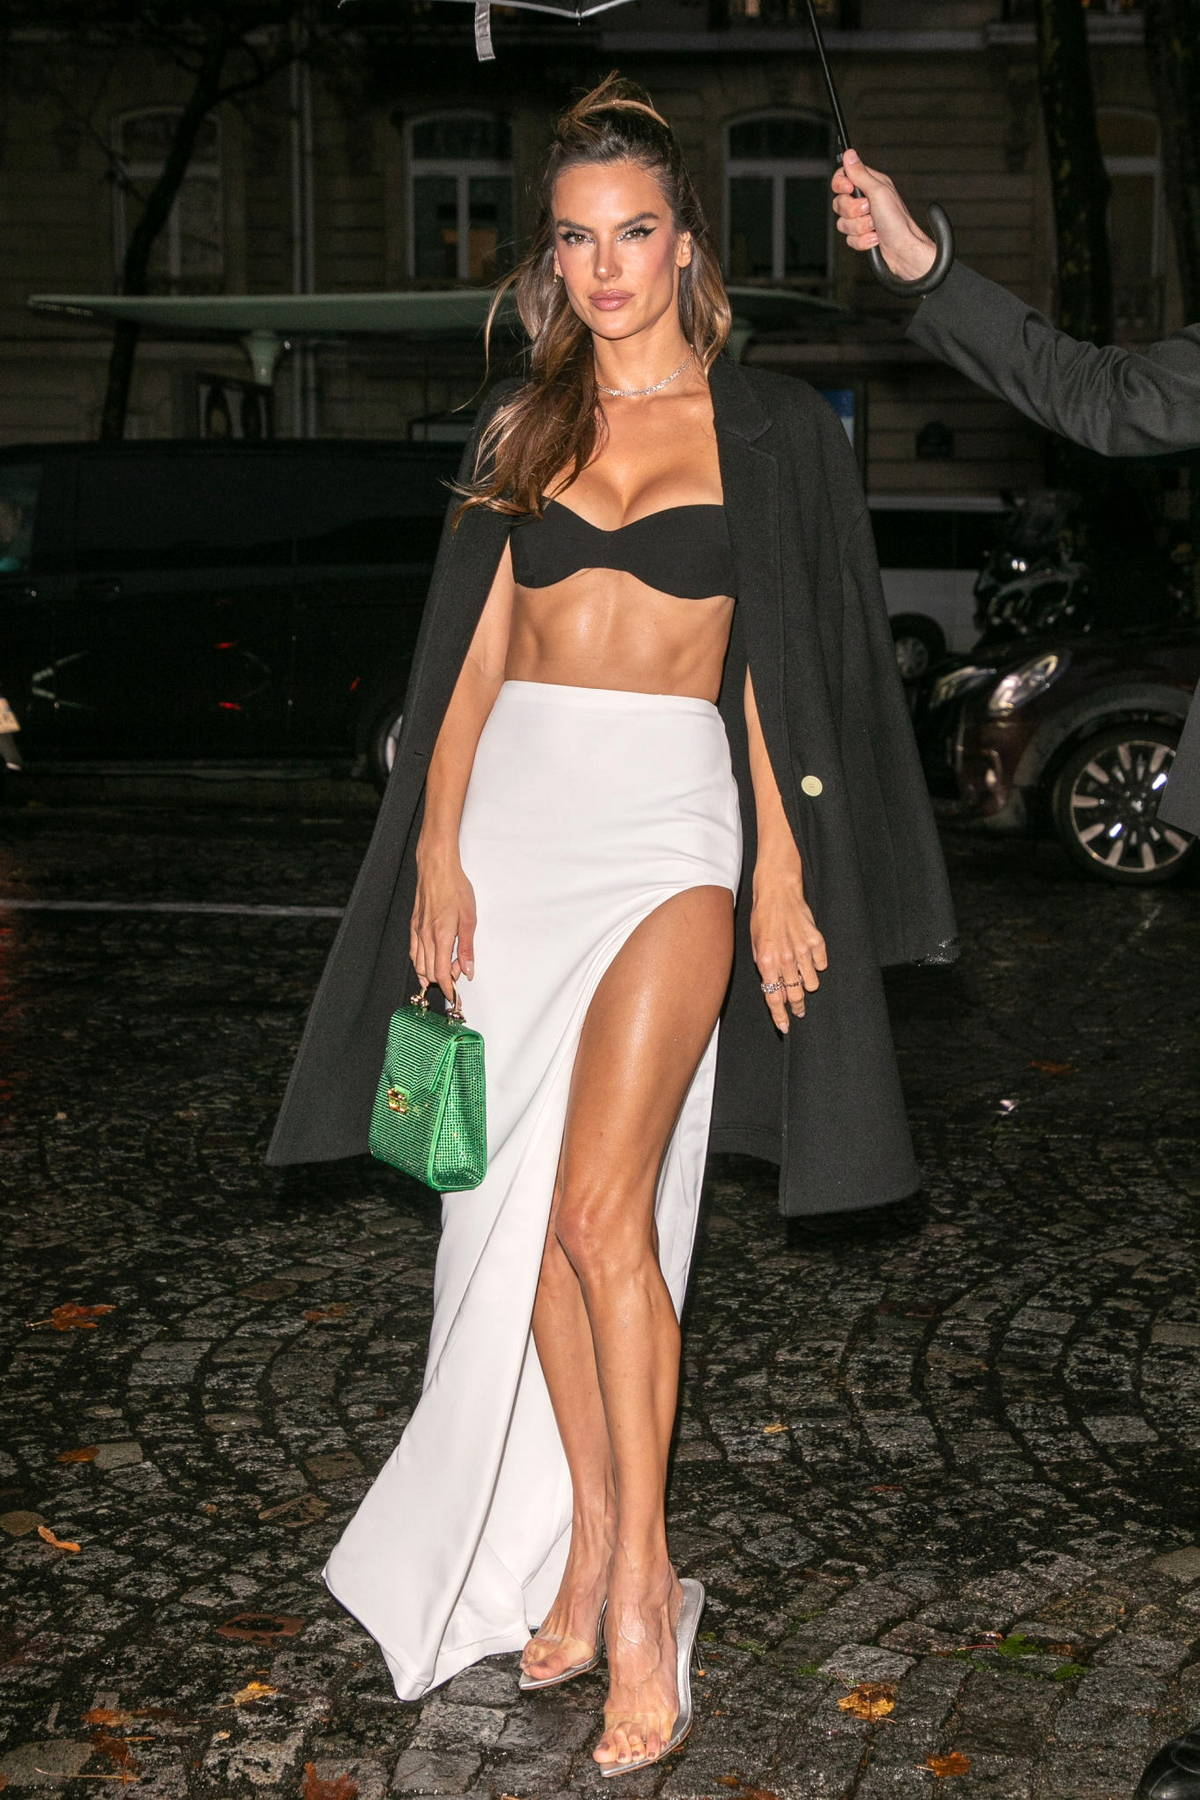 Alessandra Ambrosio attends the 'Vogue' Paris celebrating its 100th anniversary during Paris Fashion Week in Paris, France